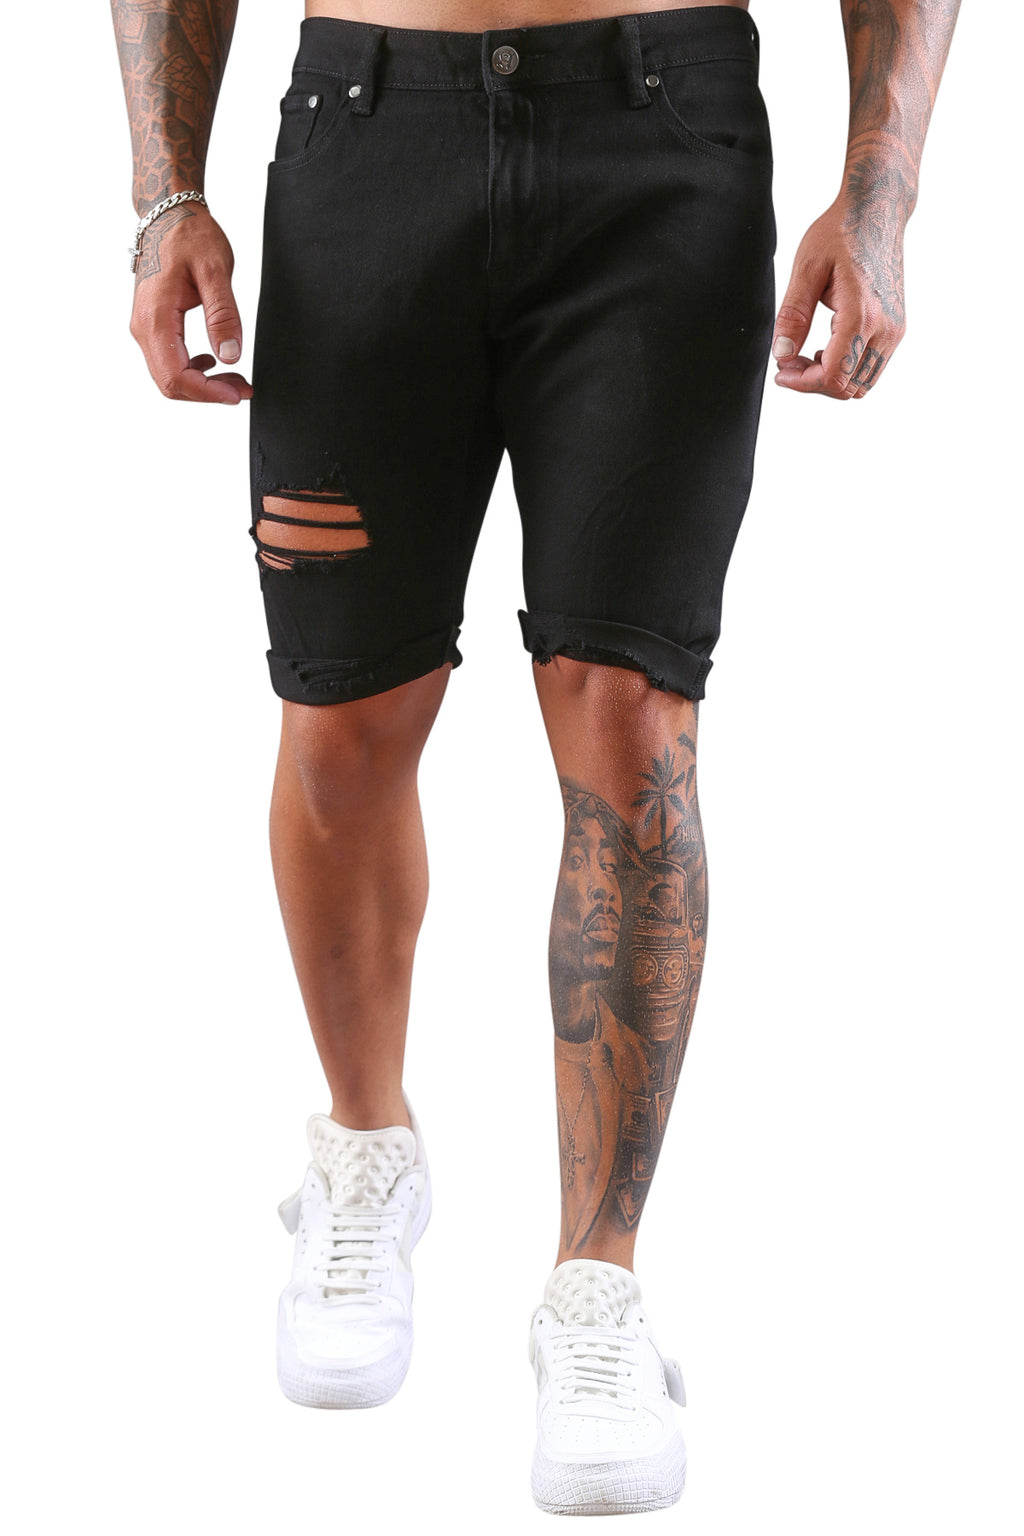 AFKNCHUR Empress Distressed Shorts Black